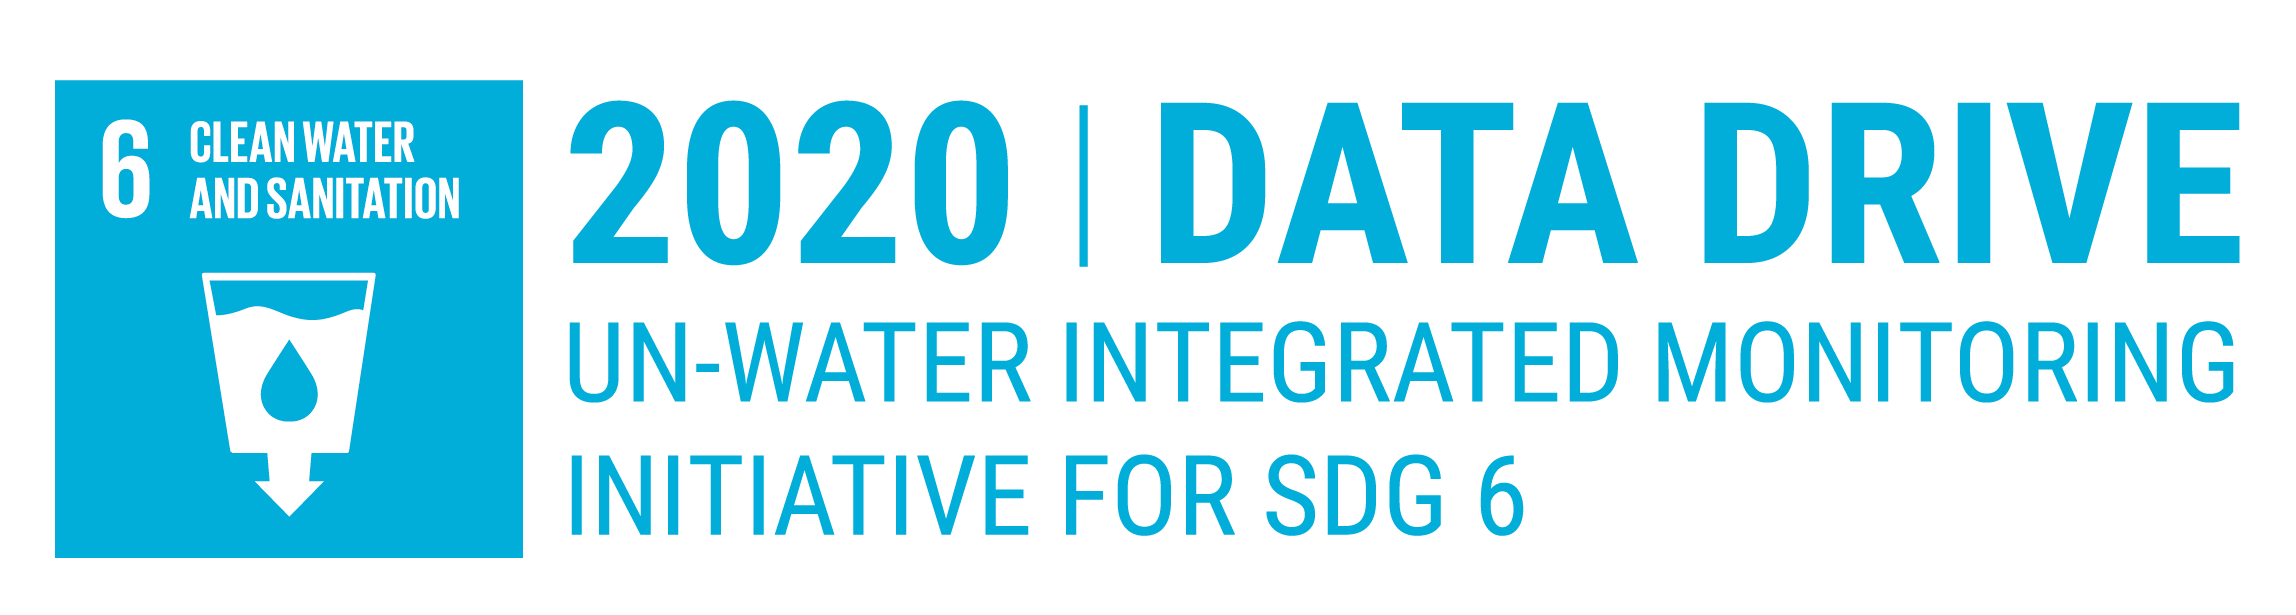 Learn more about the 2020 Data Drive